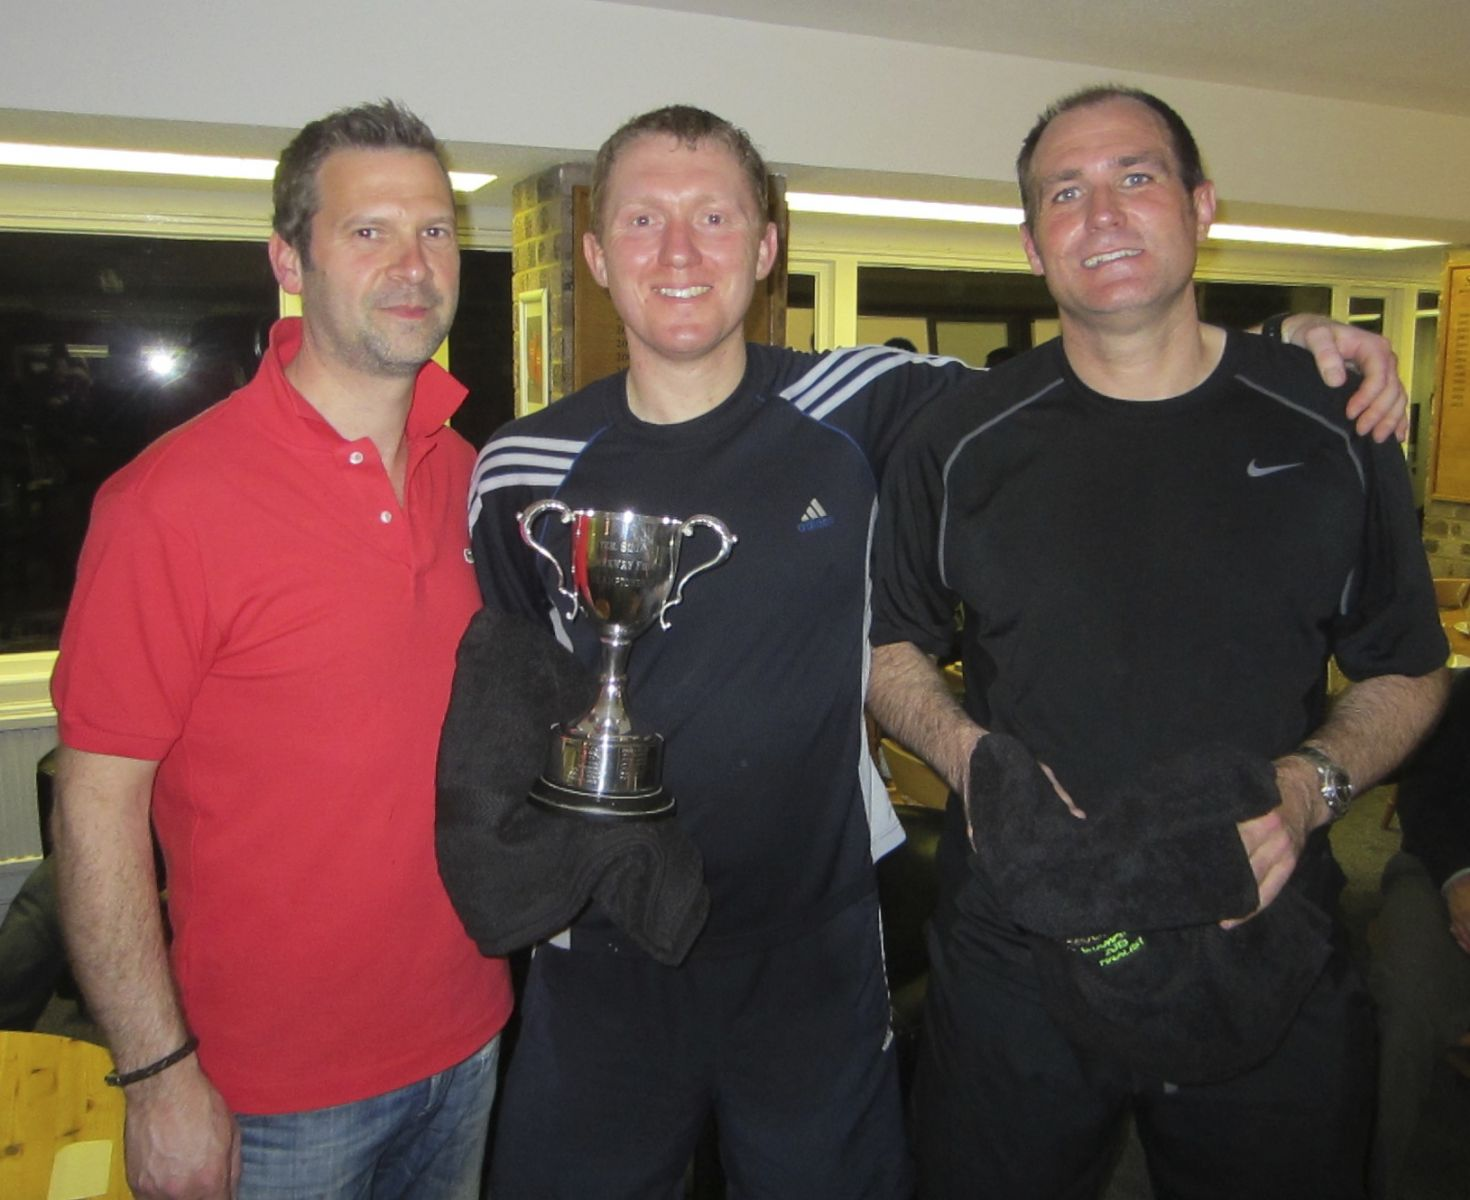 Stewart Dipple Squash Champion with Craig Robinson Runner Up